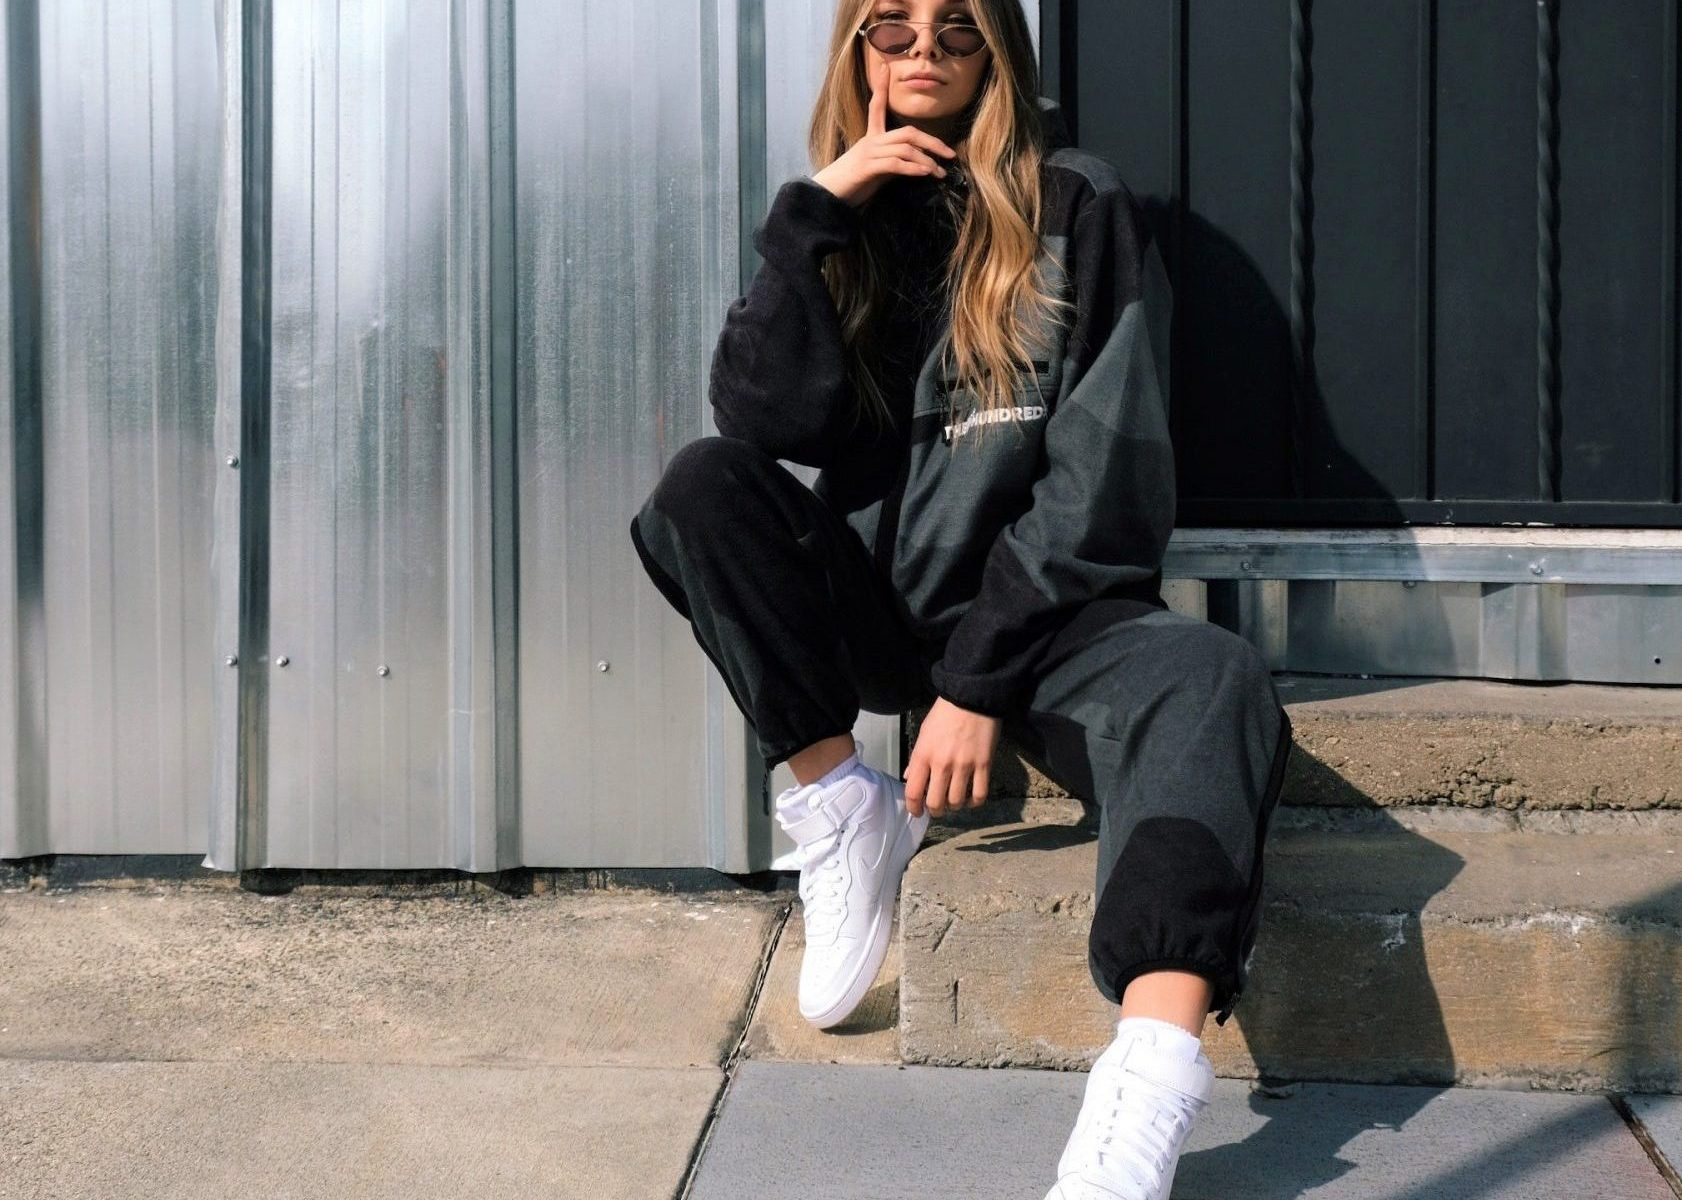 girl blonde with çong hair in all black sport jumpsuit and white sneakers seated in a walkside